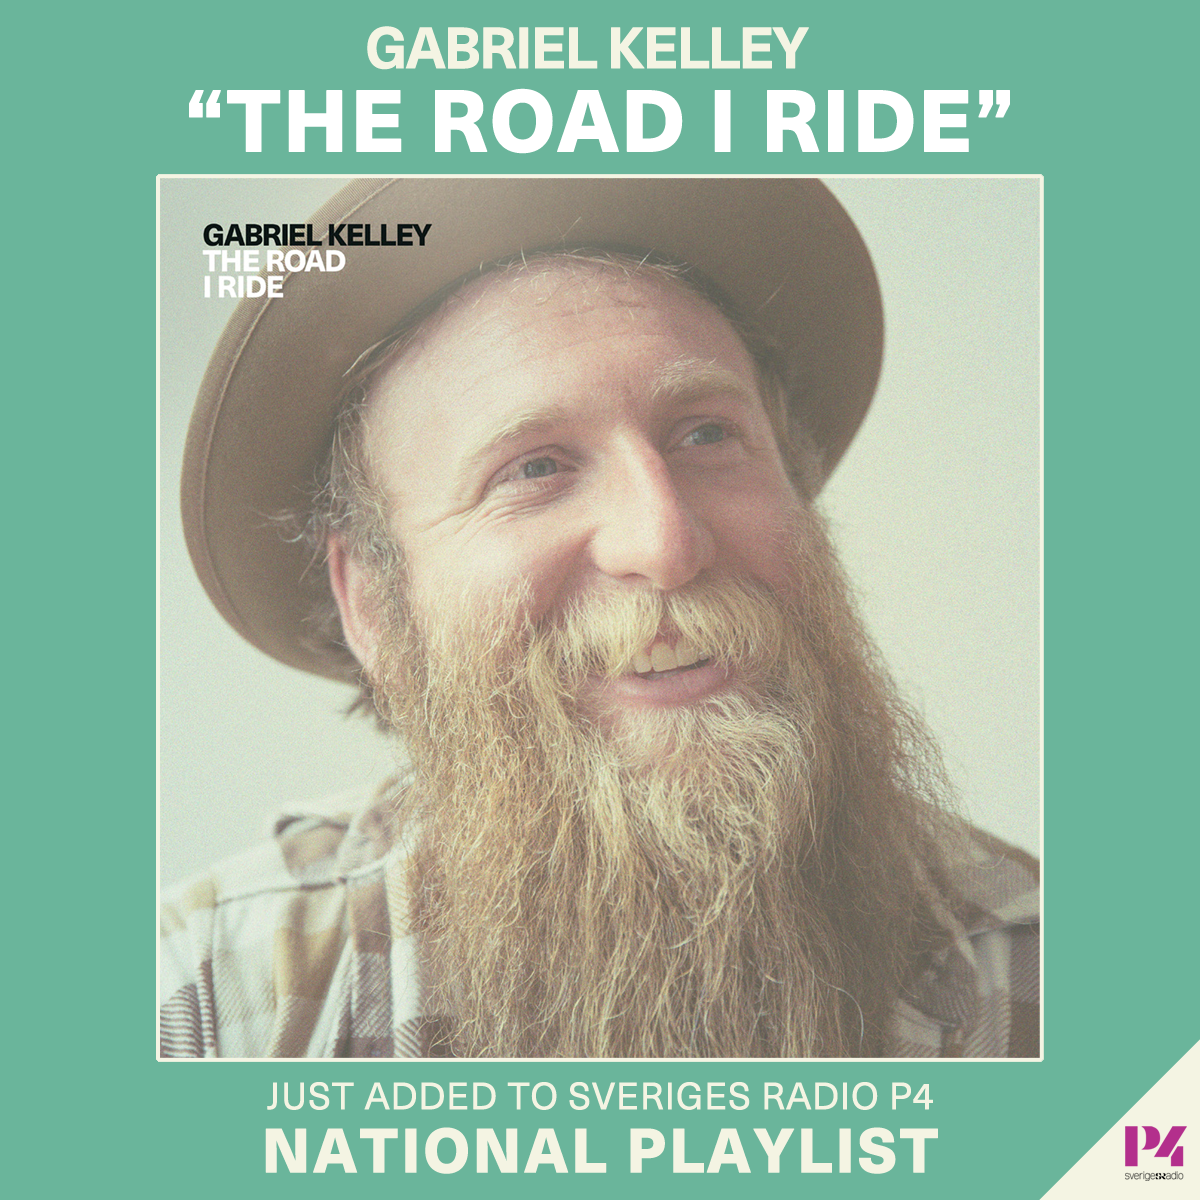 Gabriel Kelley - The Road I Ride - P4 Sveriges Radio National Playlist